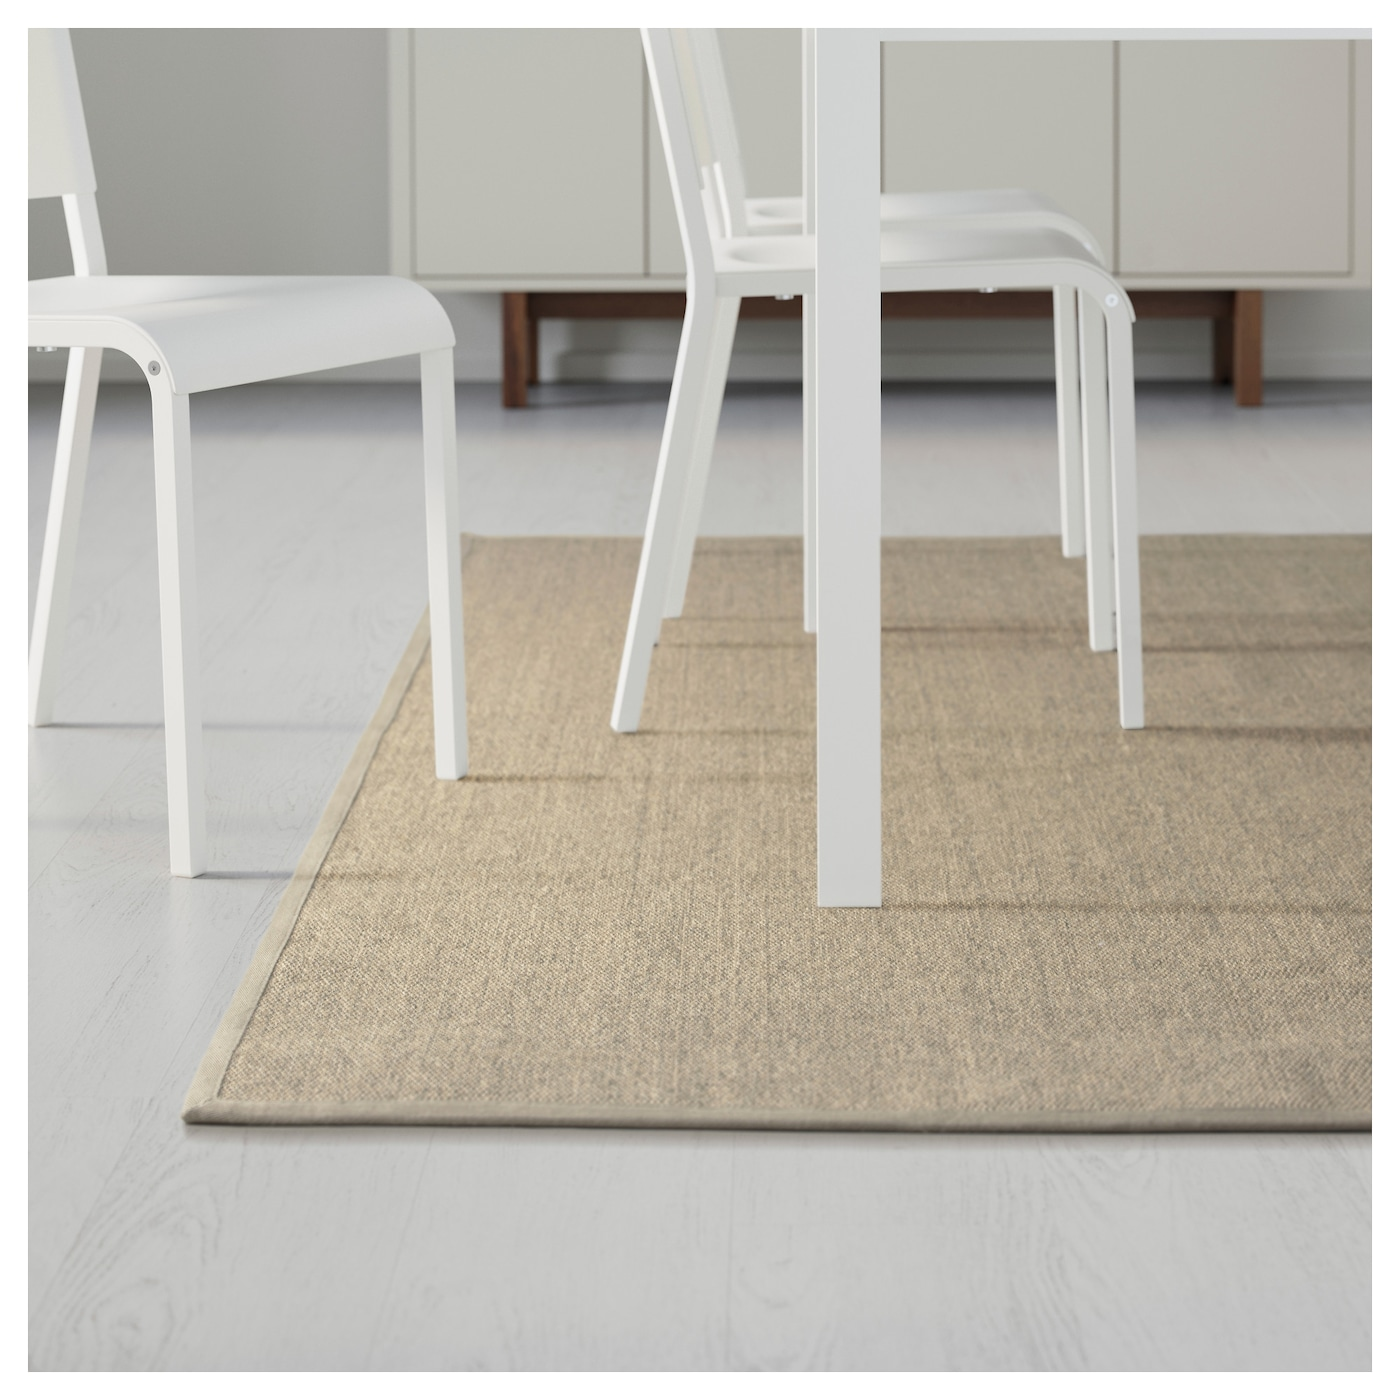 Ikea Osted Rug Flatwoven Polyester Edging Makes The Extra Durable And Strong